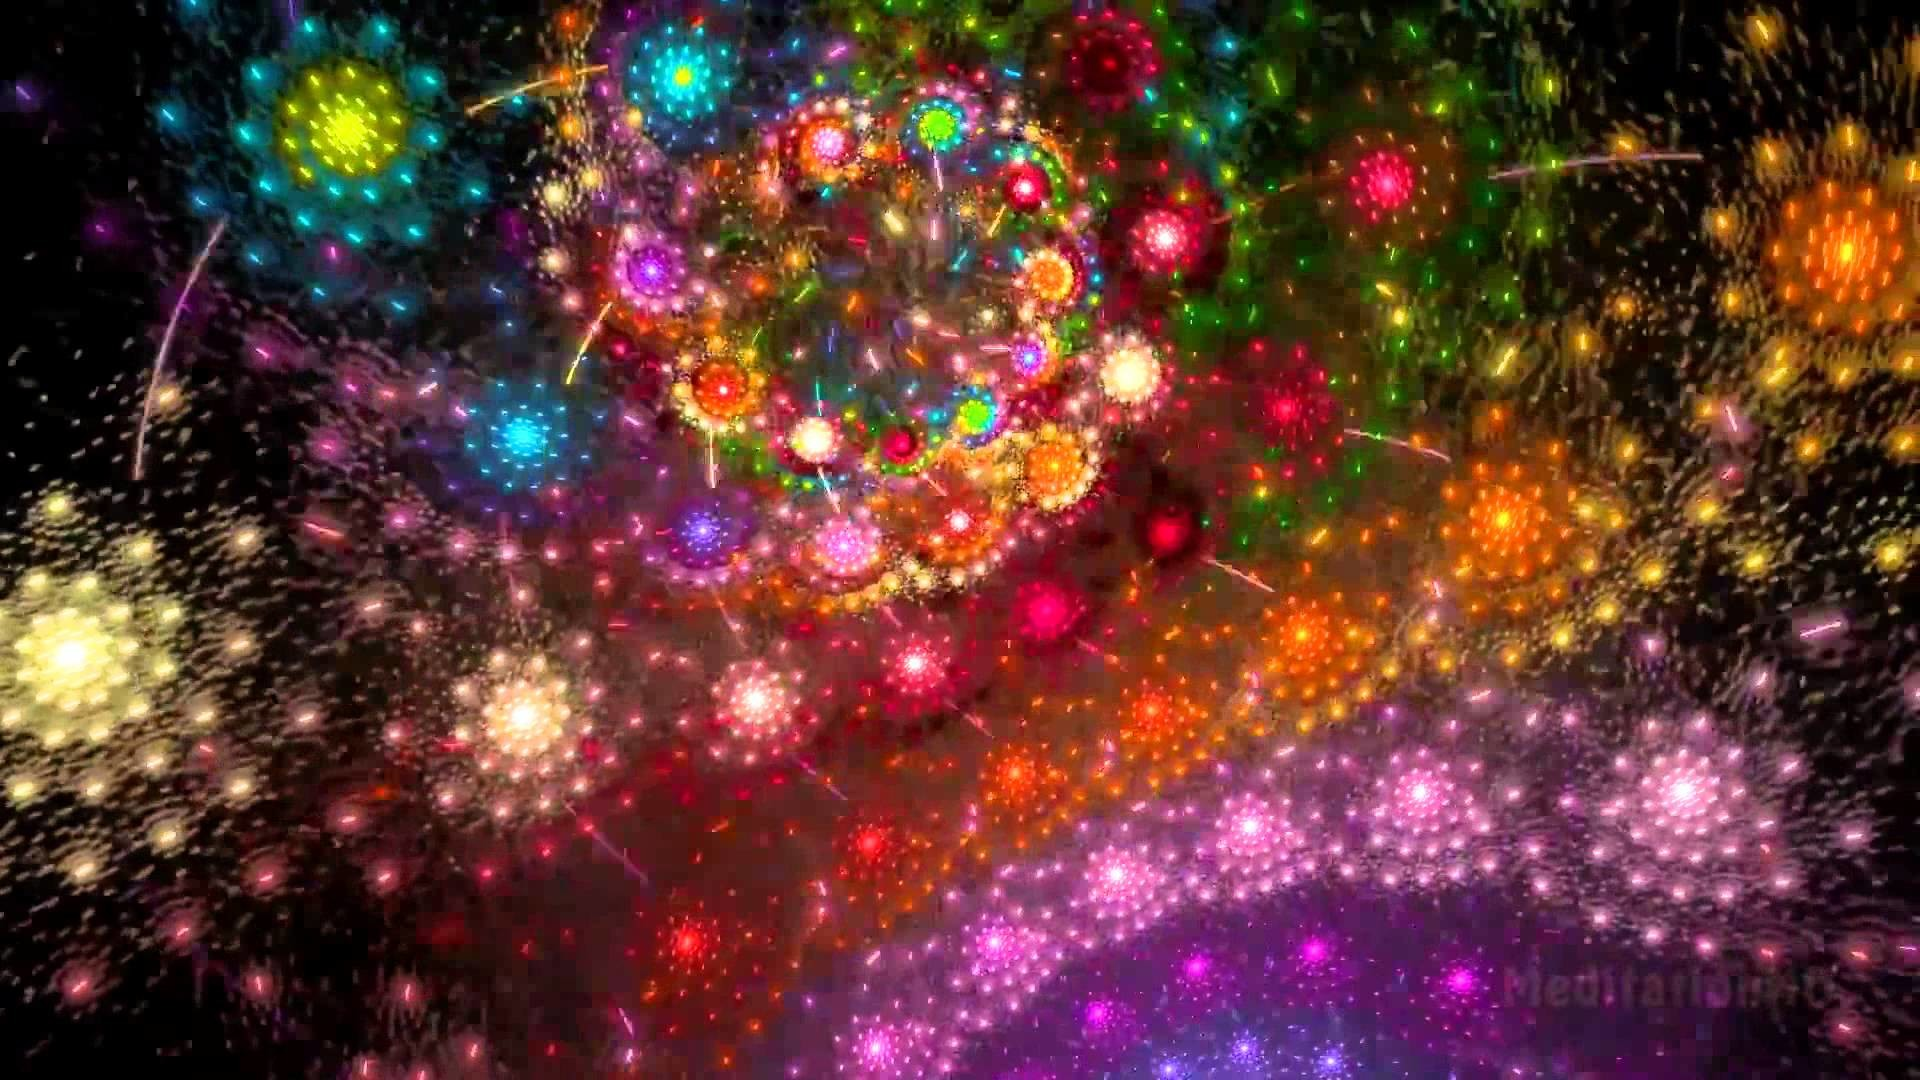 Electric Sheep in HD (Psy Dark Trance) 3 hour Fractal Animation (Full  Ver.2.0) – YouTube